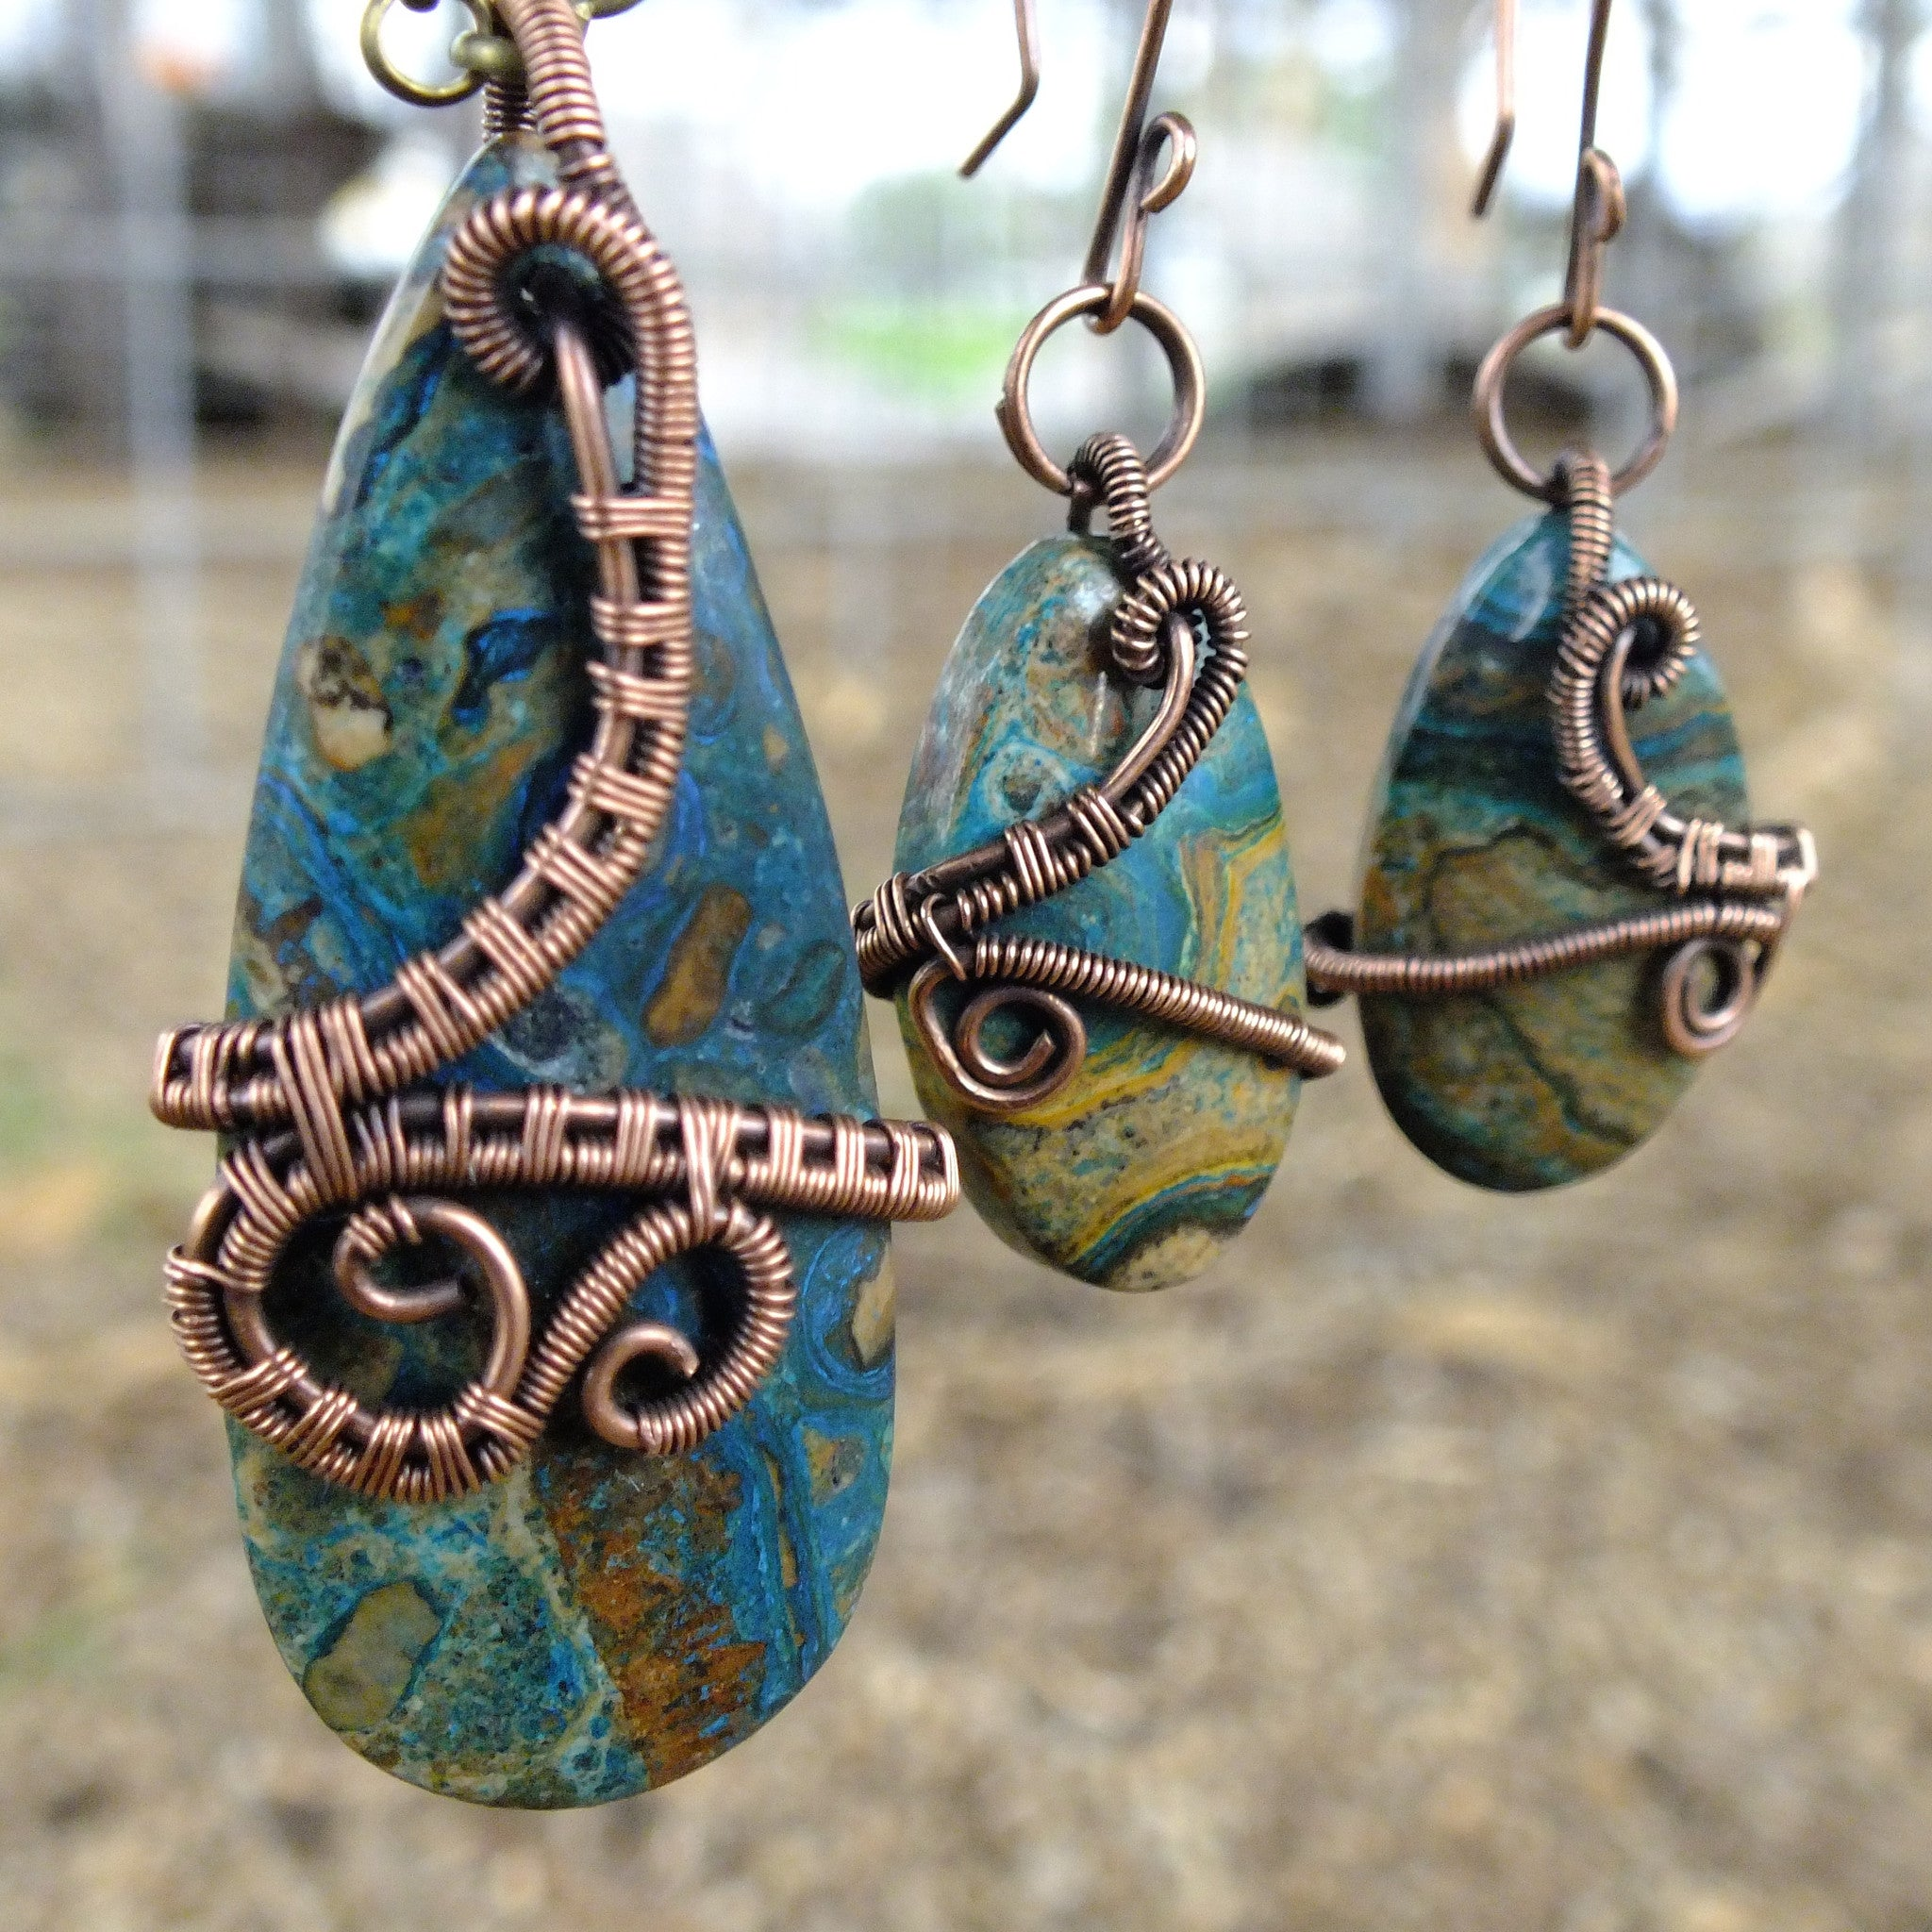 polyester resin patina with wearables rw and treated rebecca plant earrings marsh copper ghost jewelry buffed